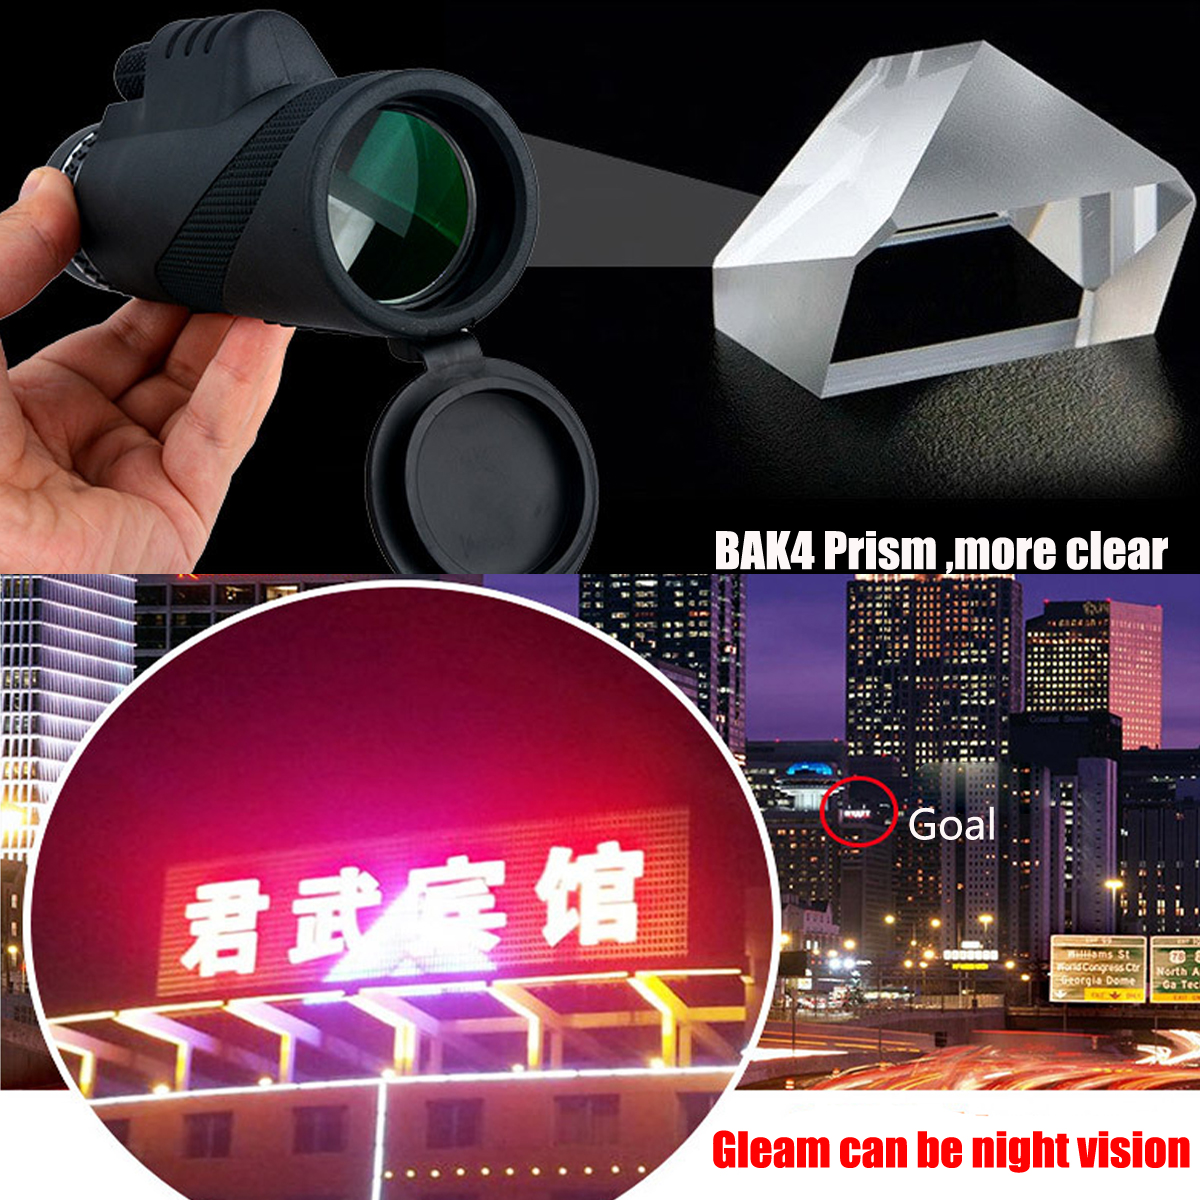 40x60 Ultra HD Optical Lens Monocular Low Light Night Vision Telescope + Clip + Tripod For Phone